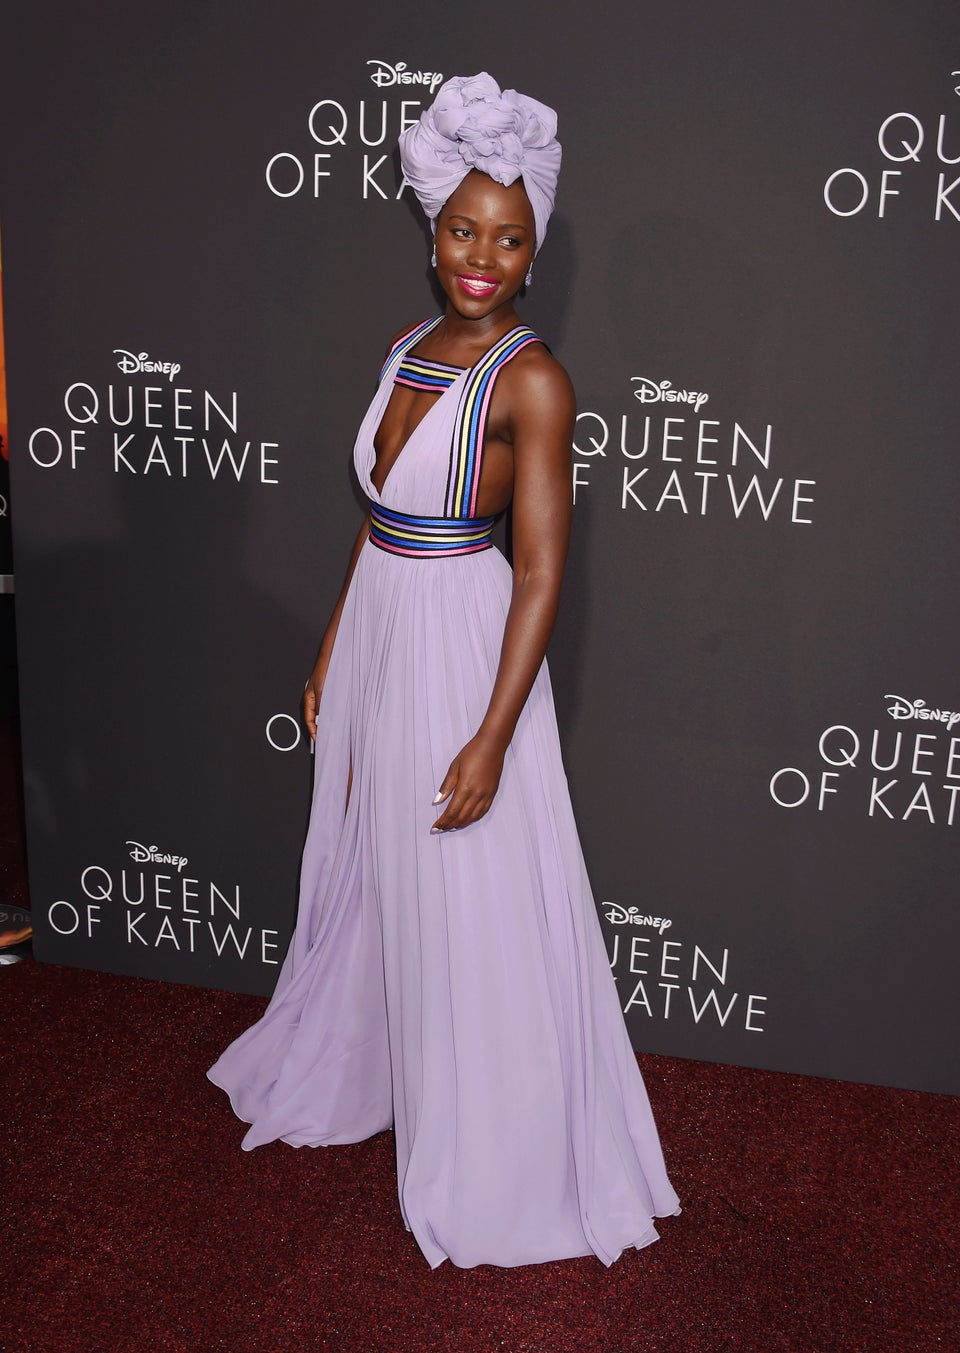 Look of the Day: Lupita Nyong'o Delivers a Royal Fashion Moment in Stunning Purple Gown